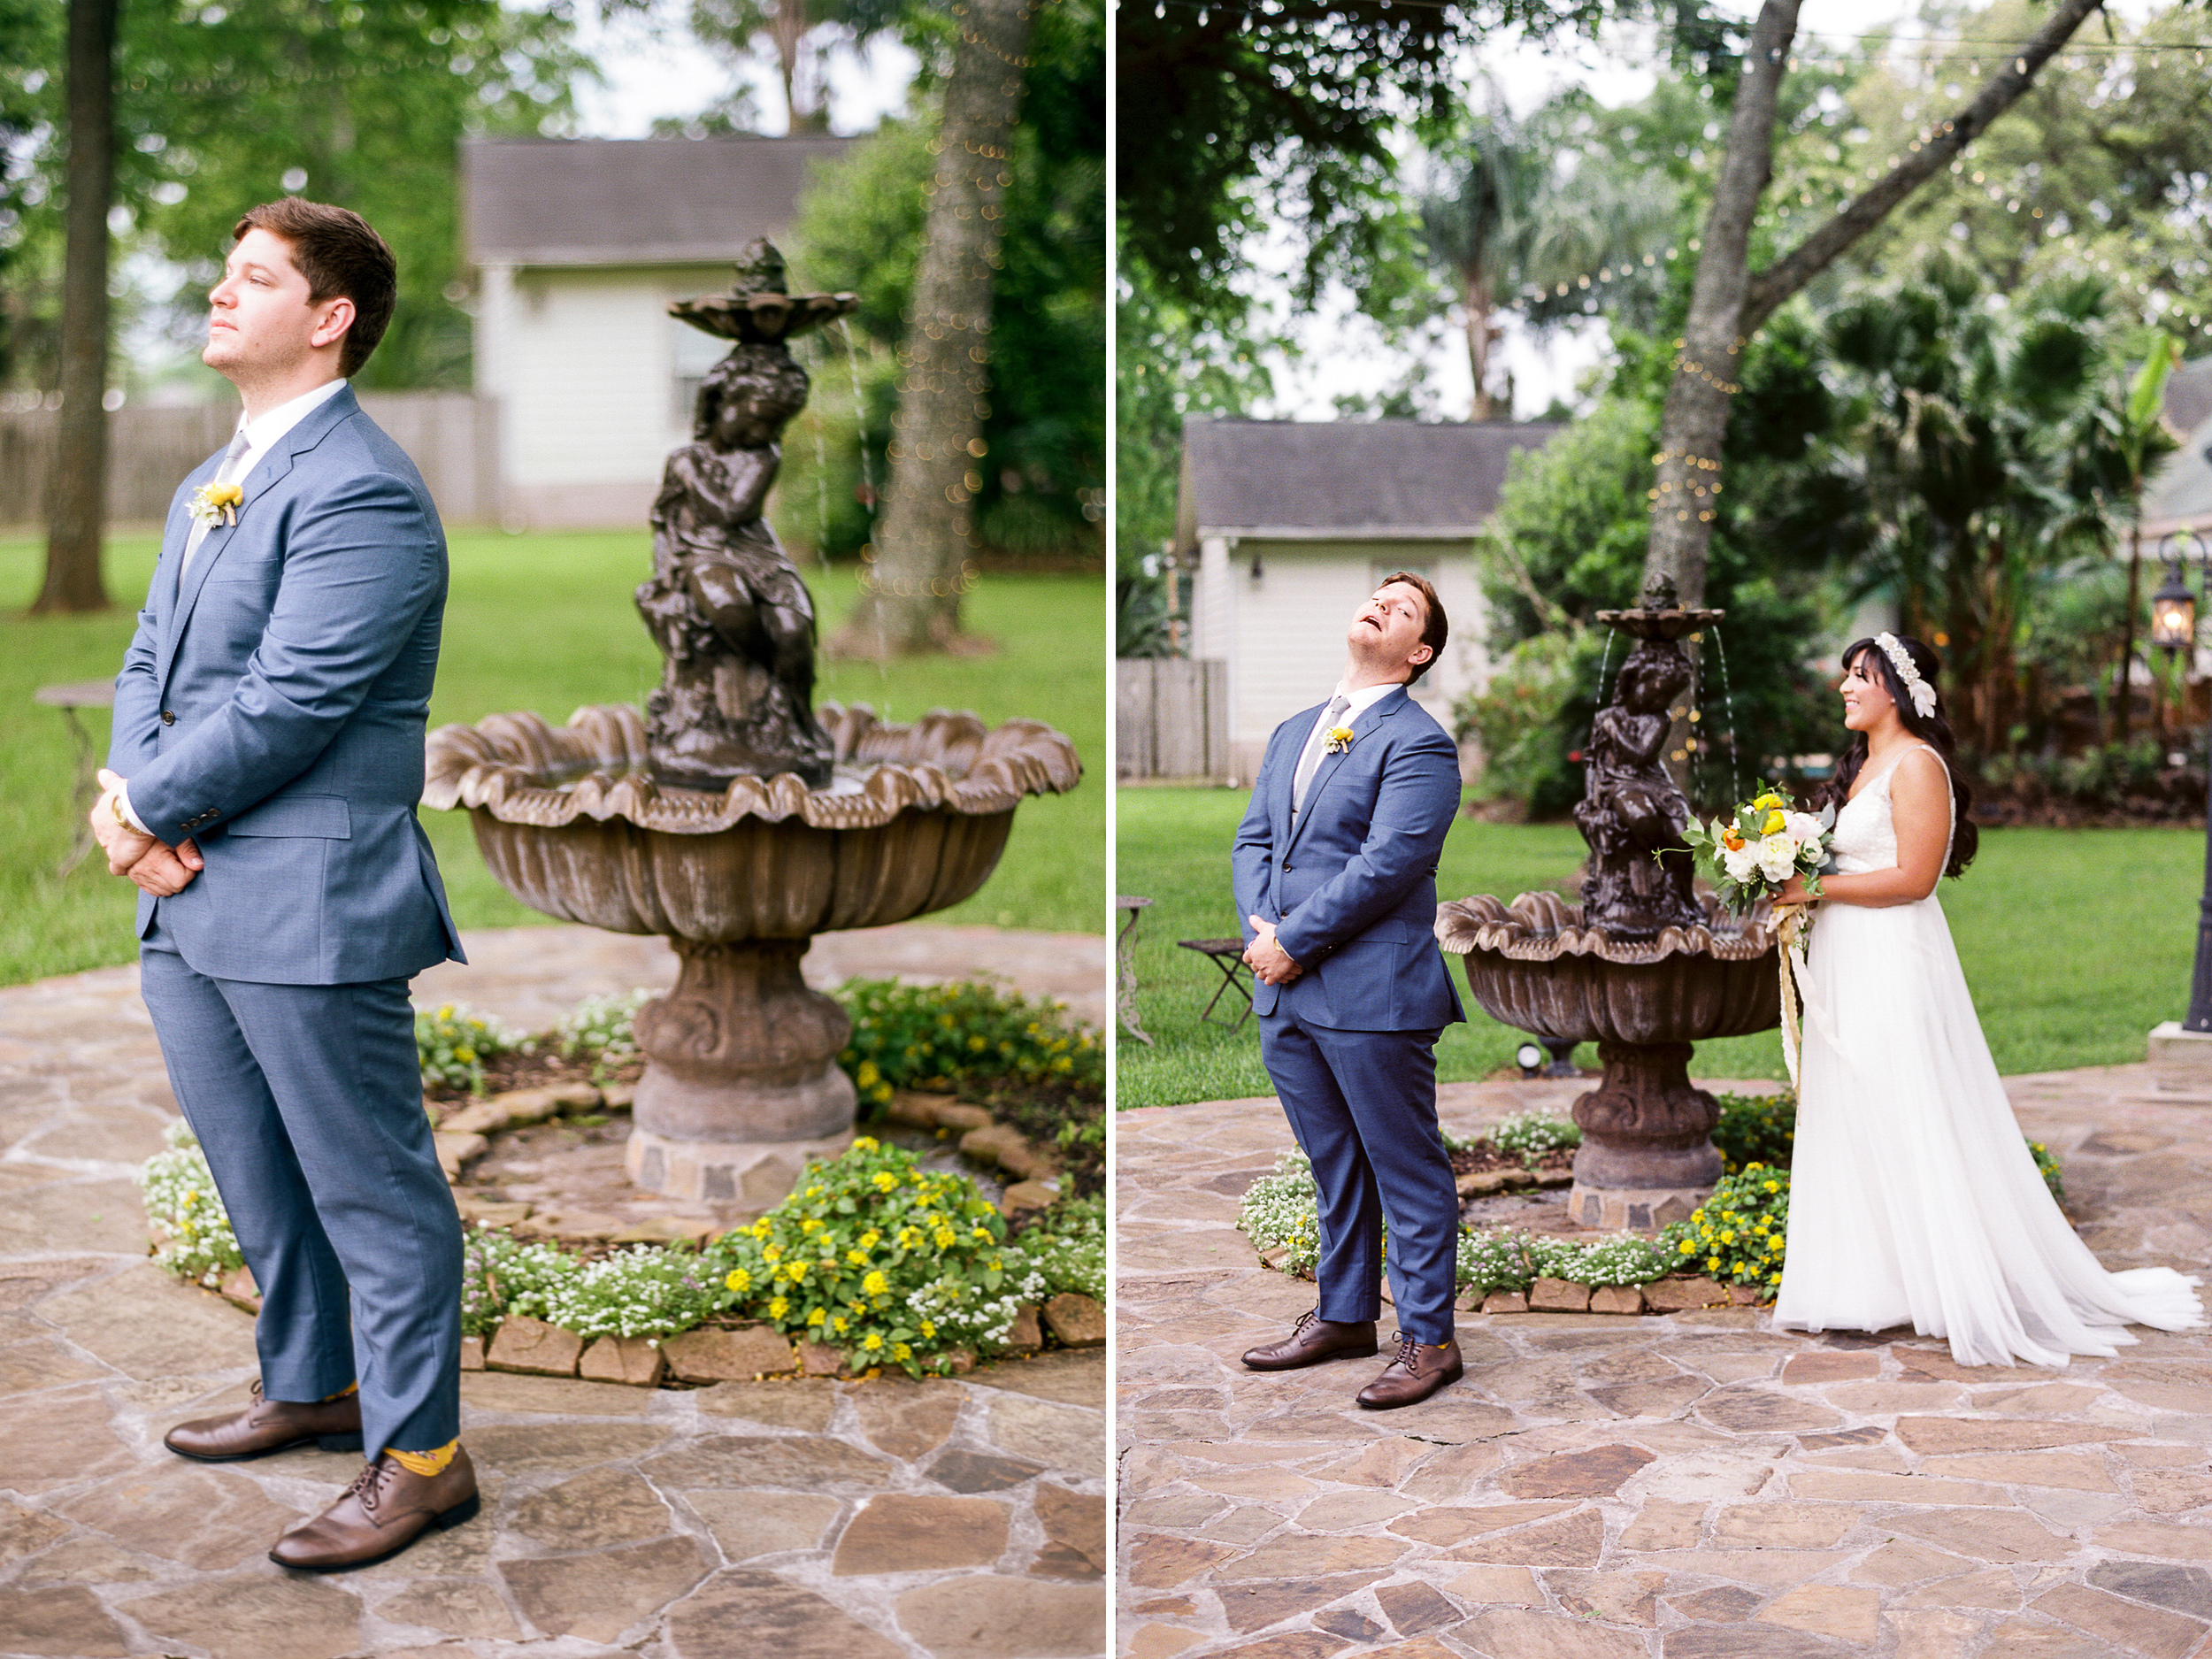 Dana Fernandez Photography Houston Texas Destination Photographer Film Ruffled Blog Wedding Bridal First Look Featured Photography Oak Tree Manor Houston-200.jpg